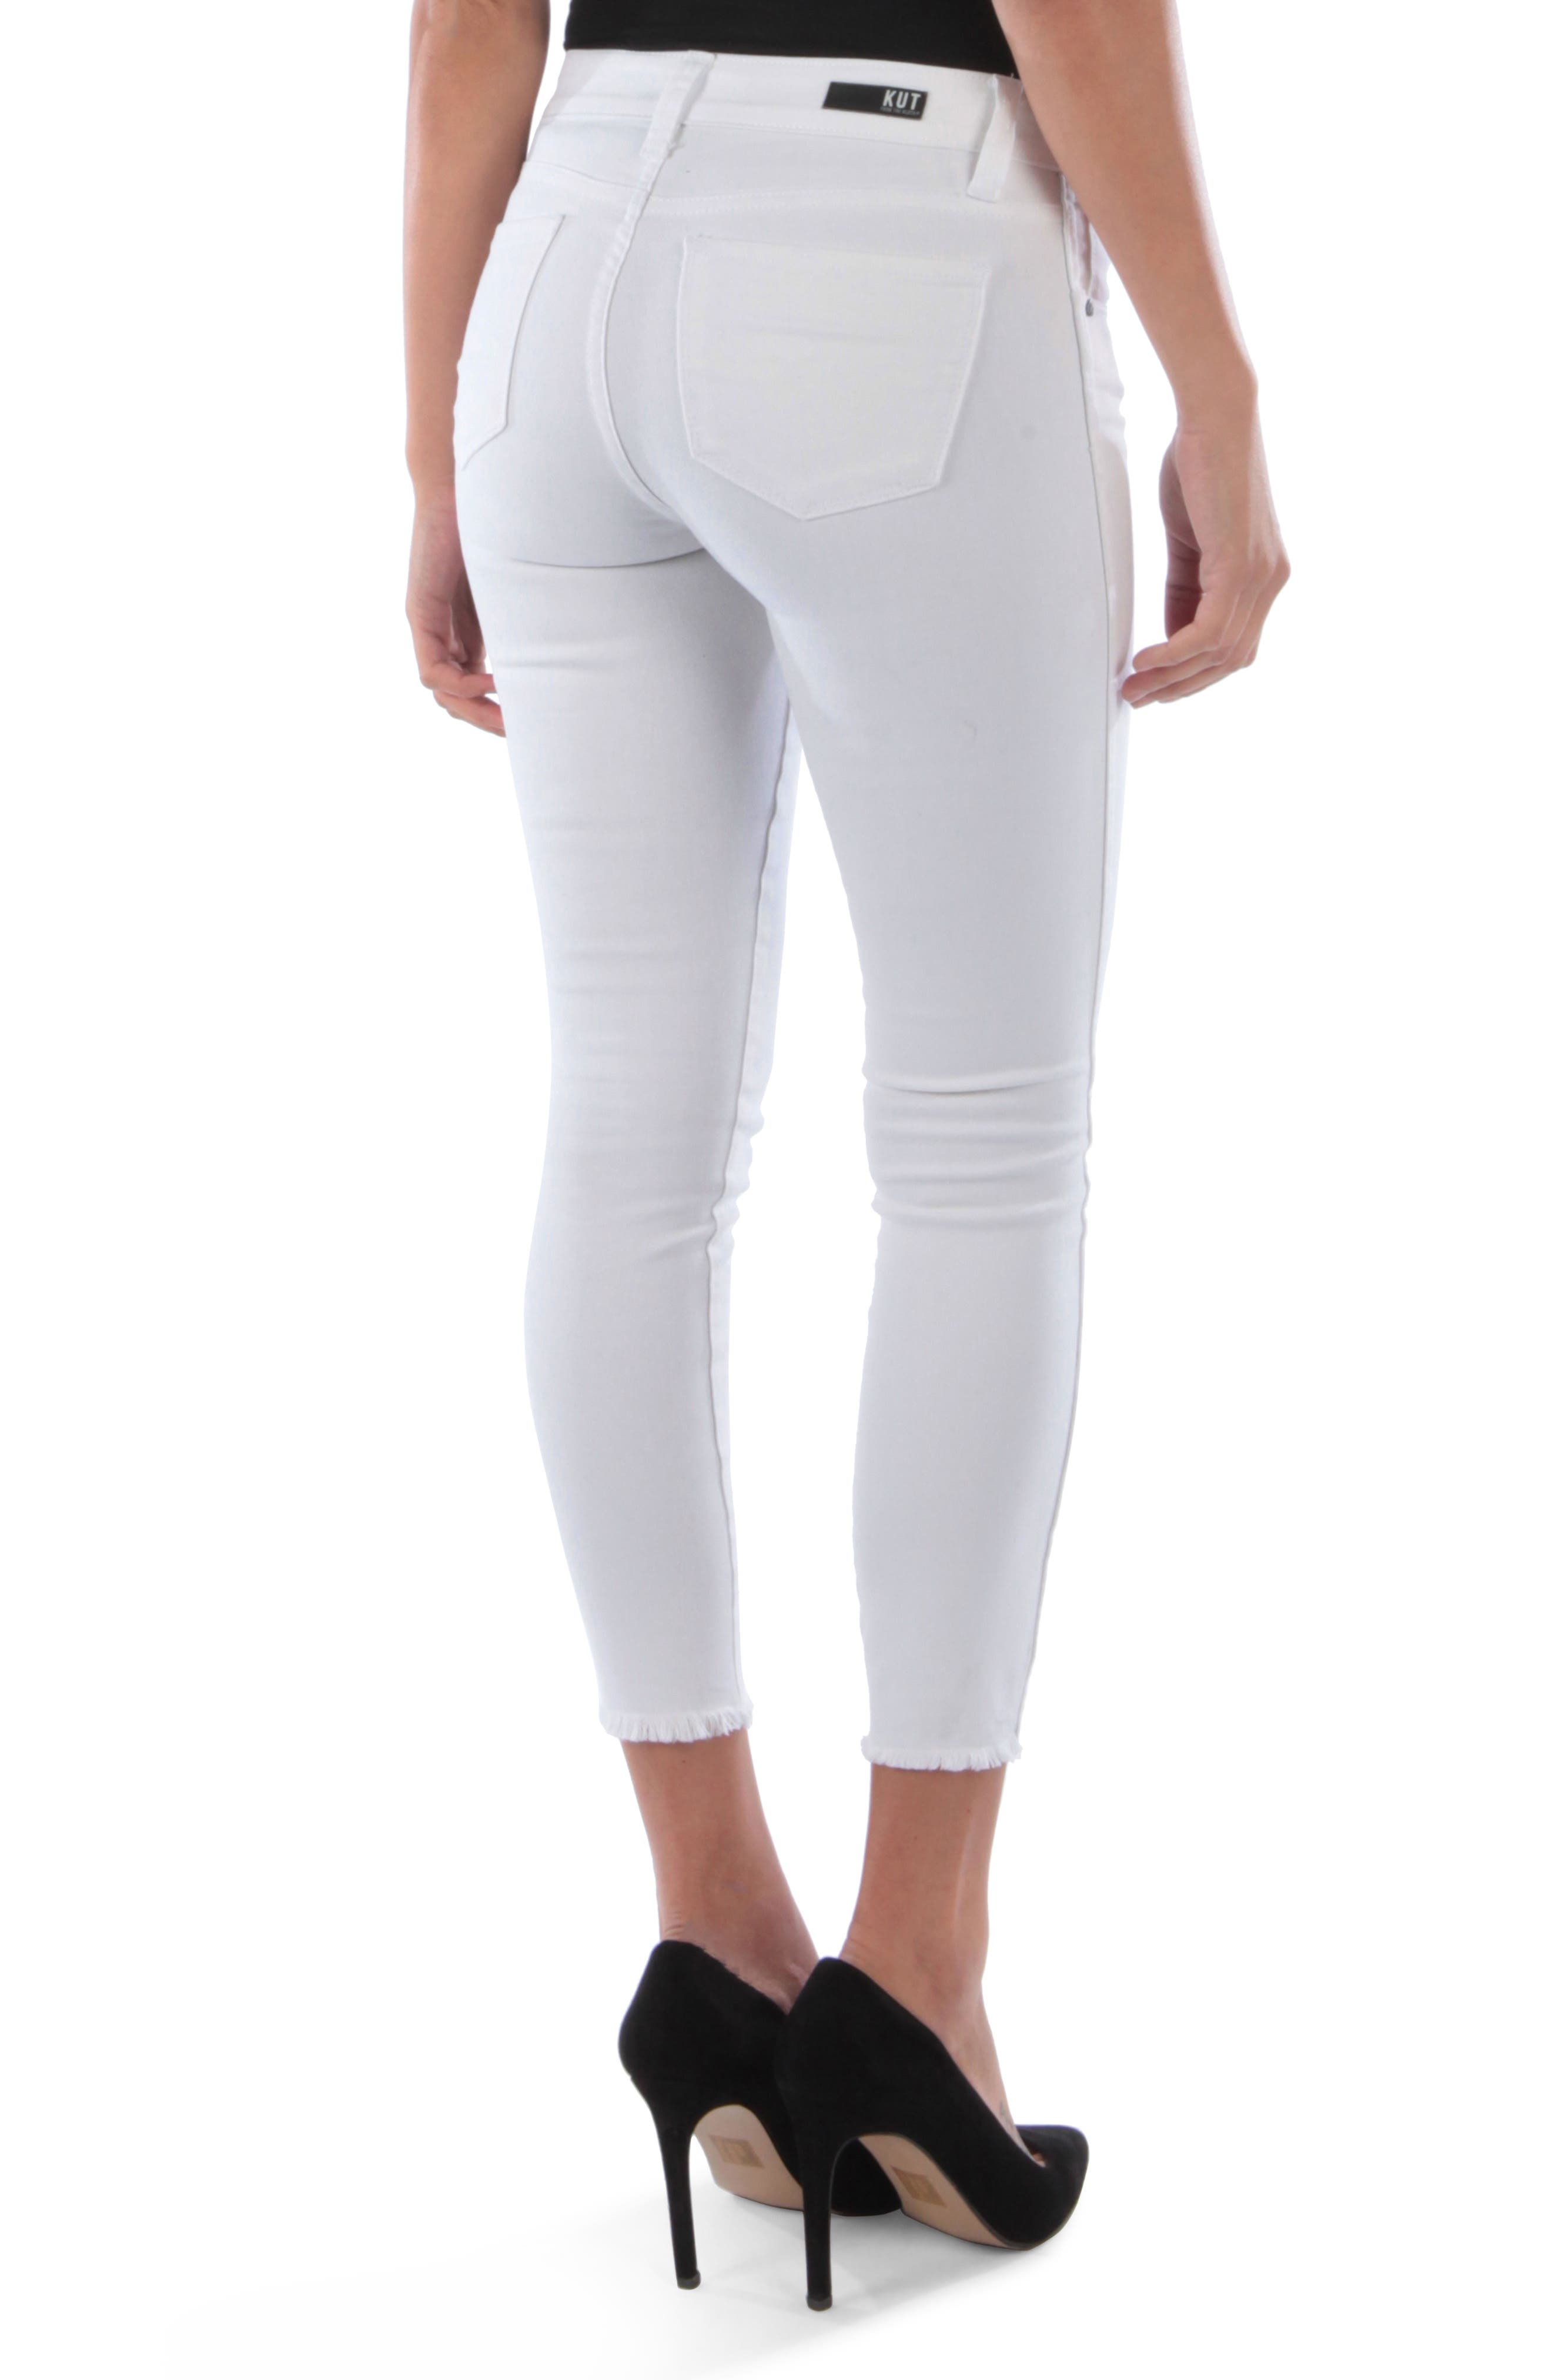 KUT FROM THE KLOTH, Connie Frayed Ankle Skinny Jeans, Alternate thumbnail 2, color, OPTICAL WHITE